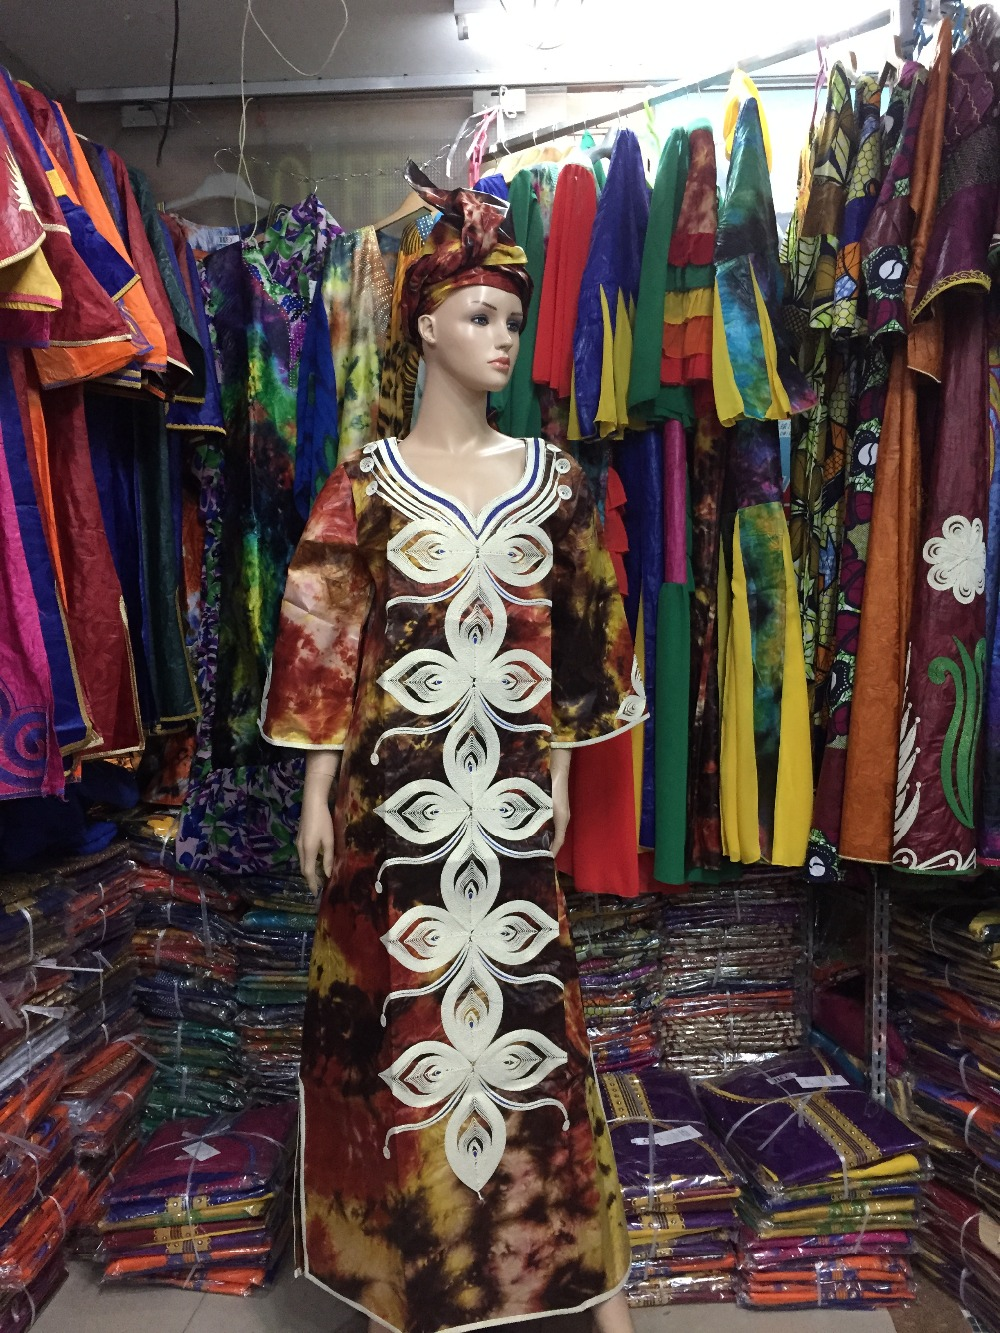 2016 African traditional fashion Bazin women dress embroidery embroidery cotton fabrics(Free DHL Shipping)S2403-1